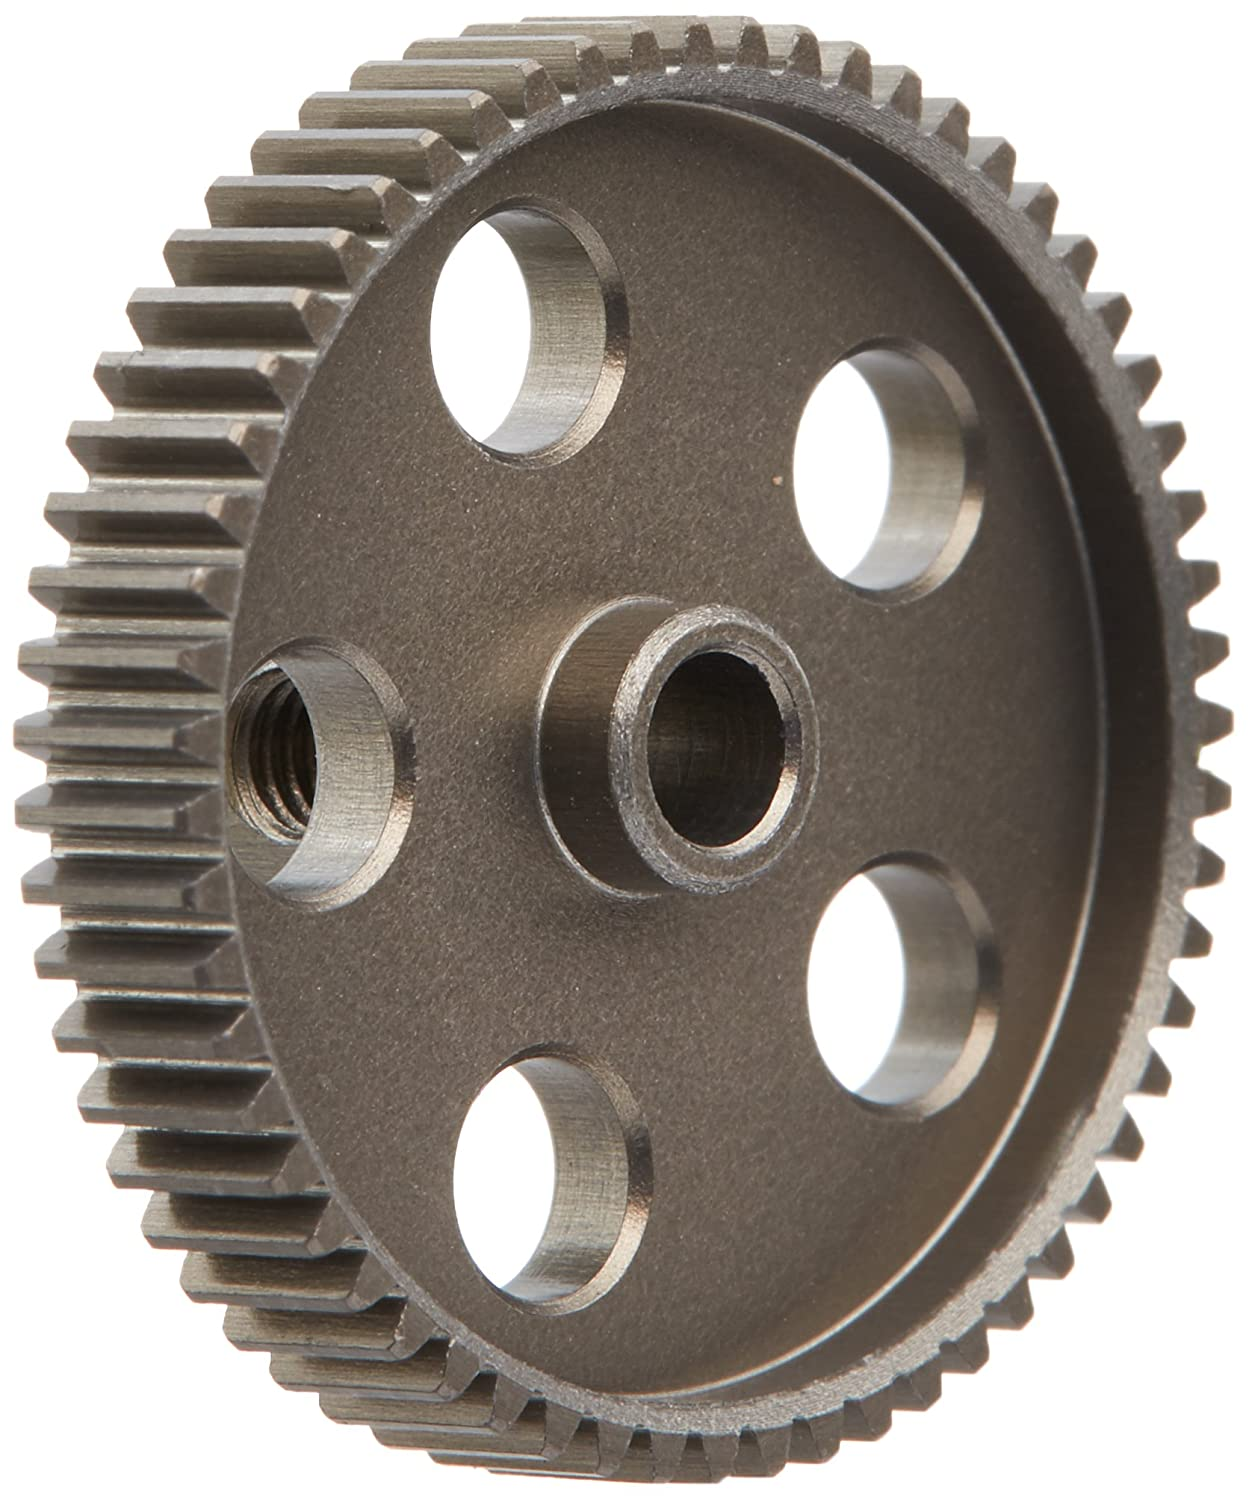 Tuning Haus 1359 59 Tooth 64 Pitch Precision Aluminum Pinion Gear HRP Distribution TUH1359